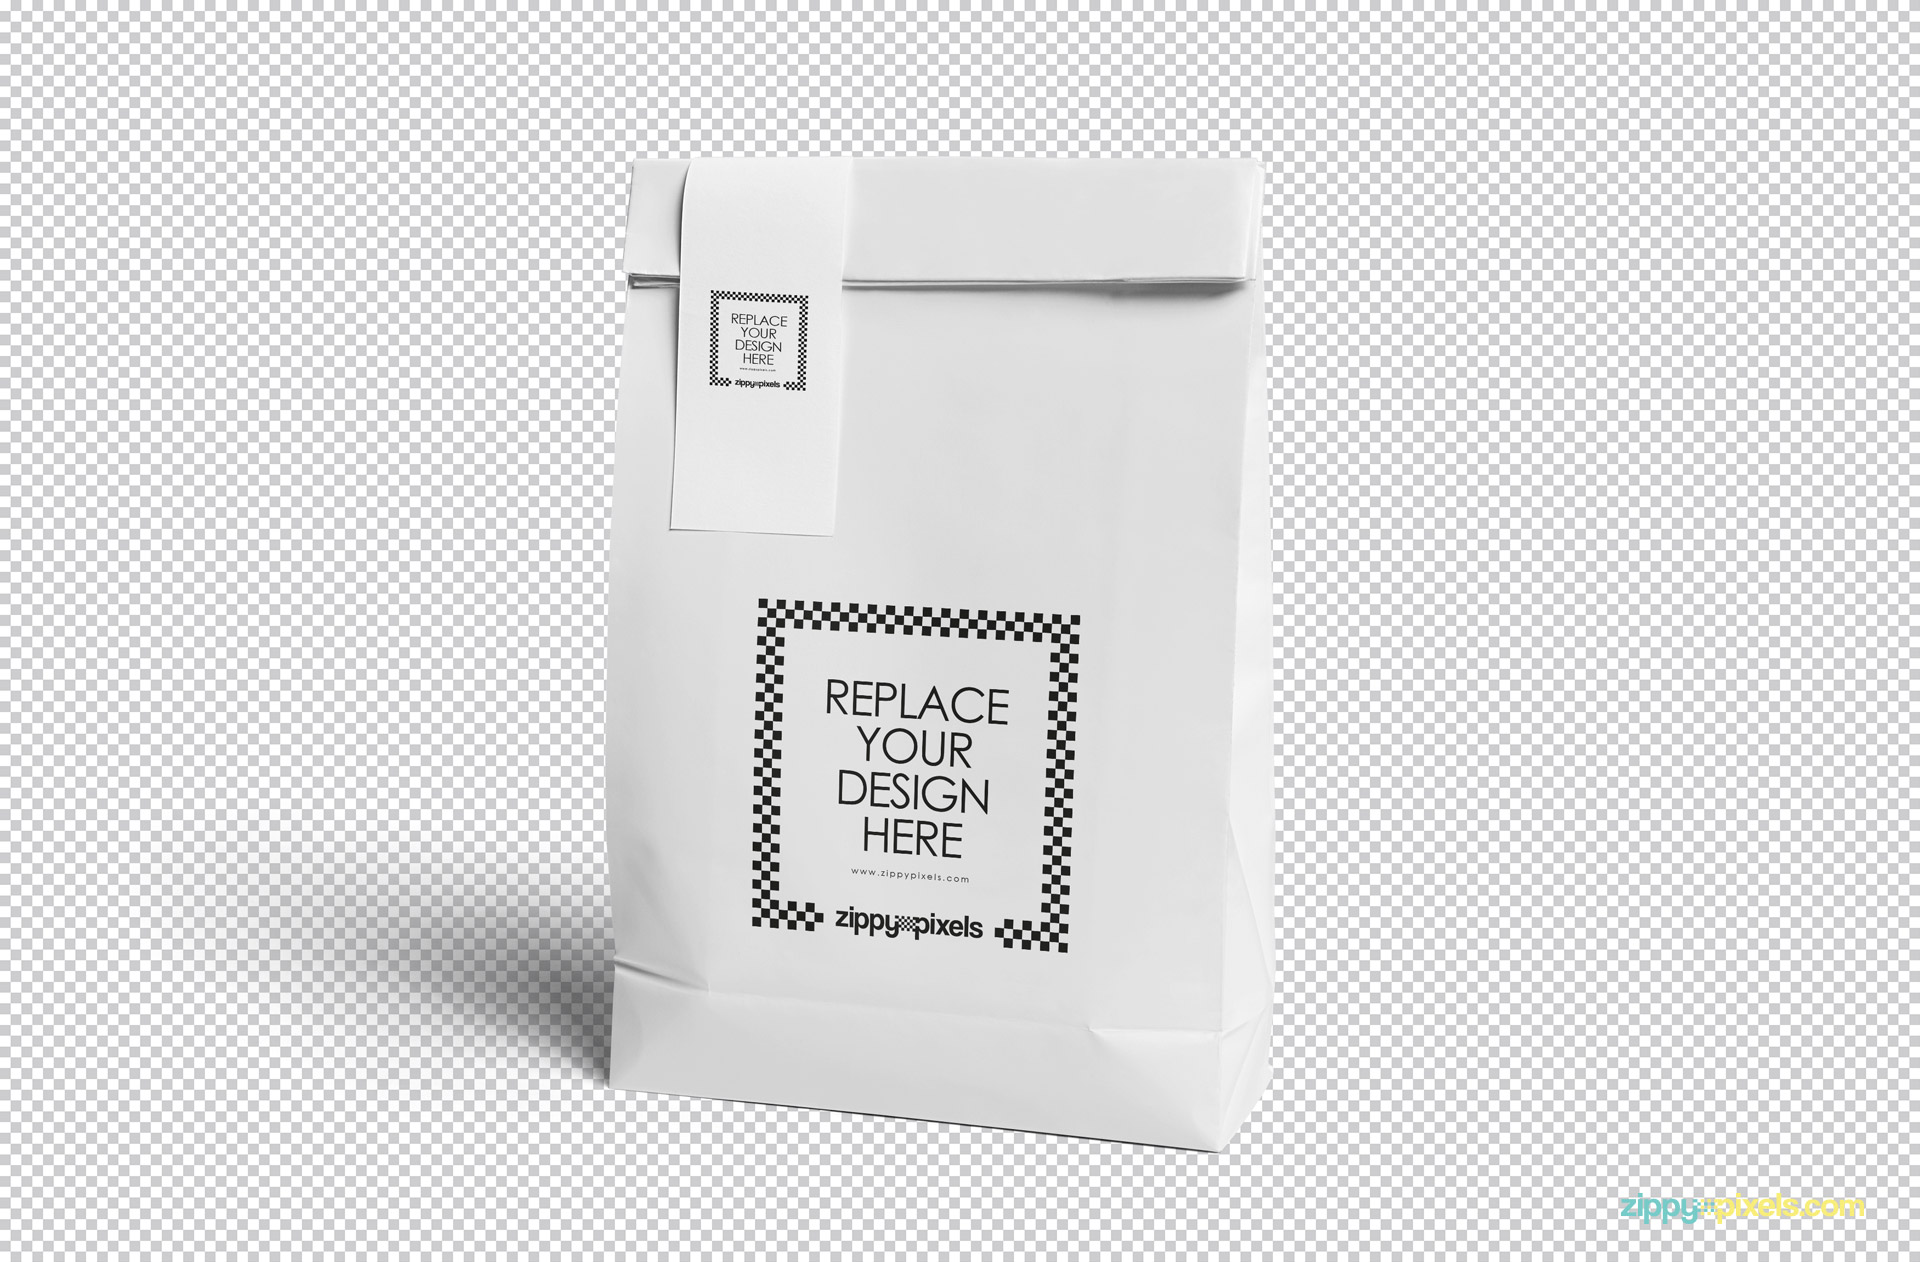 Use smart object option to replace the designs of this free shopping bag.